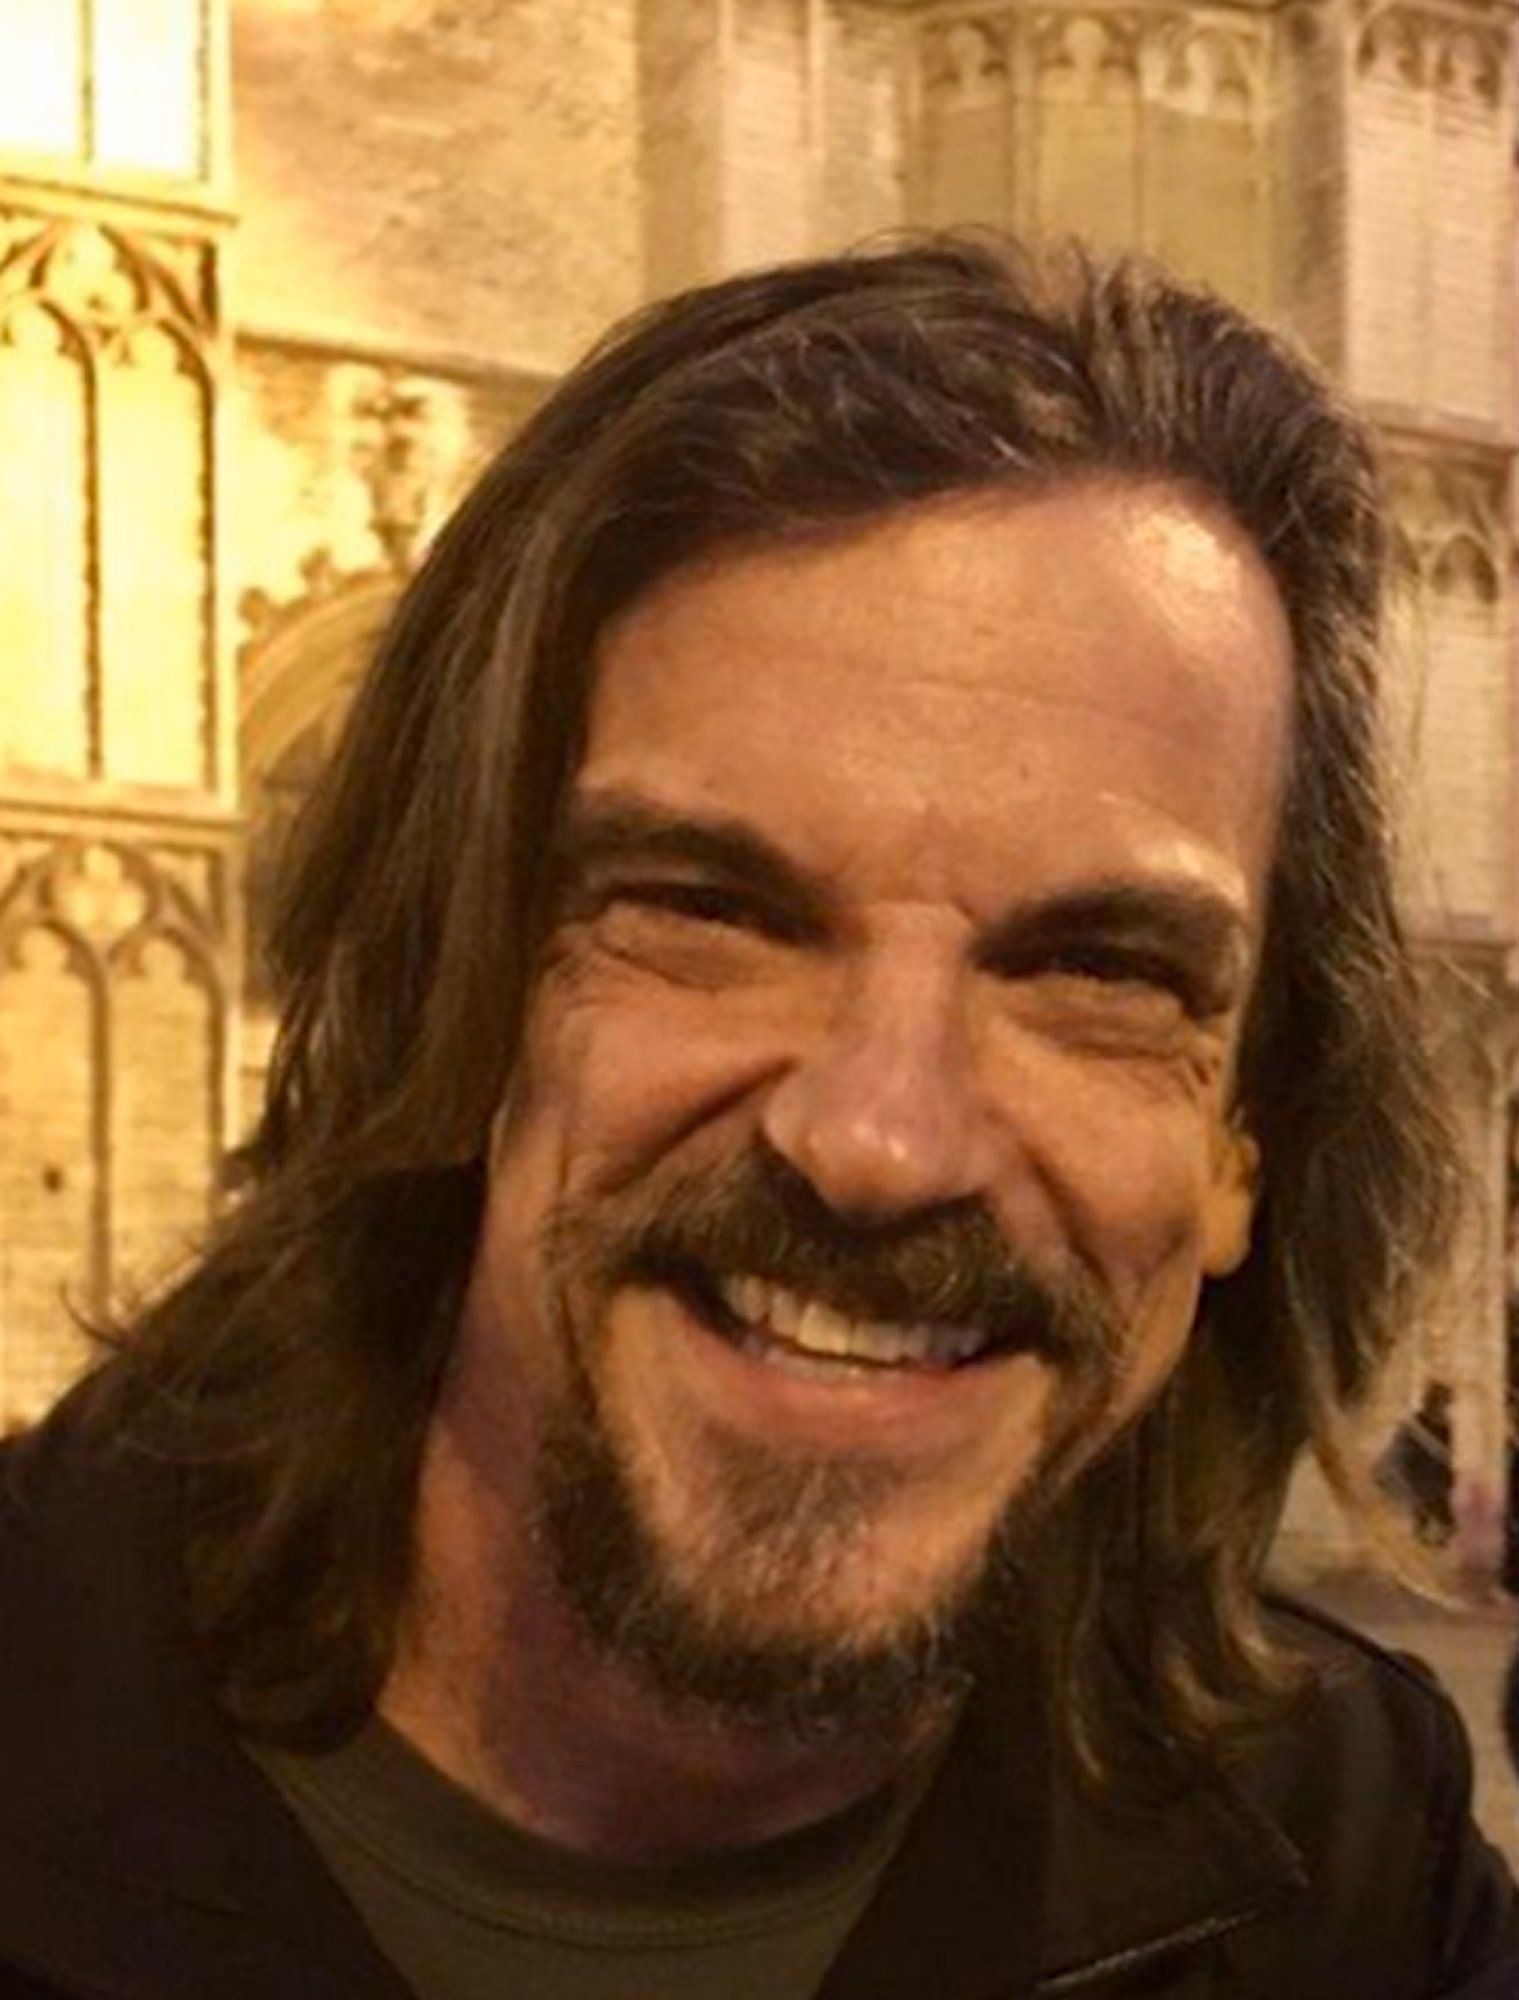 Kurt Cochran died after saving the life of his wife